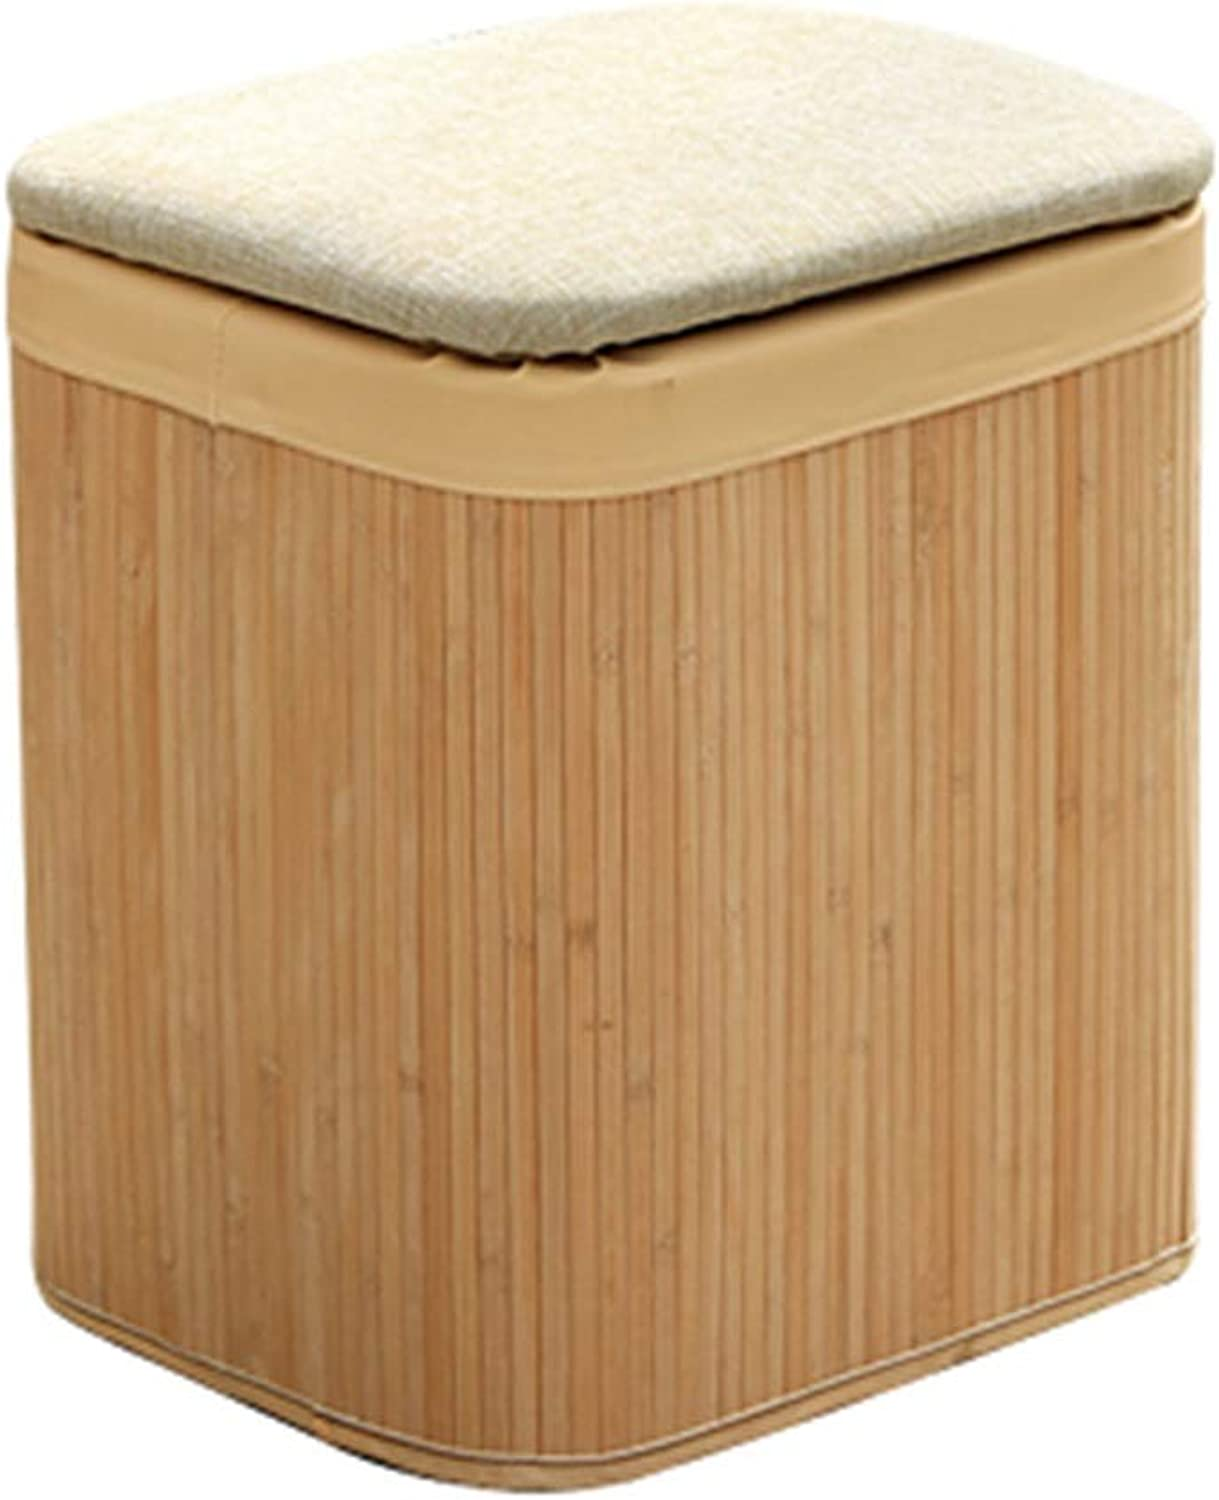 LSXIAO Sofa Stool Rectangle Solid Wood Frame Structure Storage Bamboo Craft Durable Doorway Change shoes, 2 colors (color   Beige, Size   30x26x38cm)